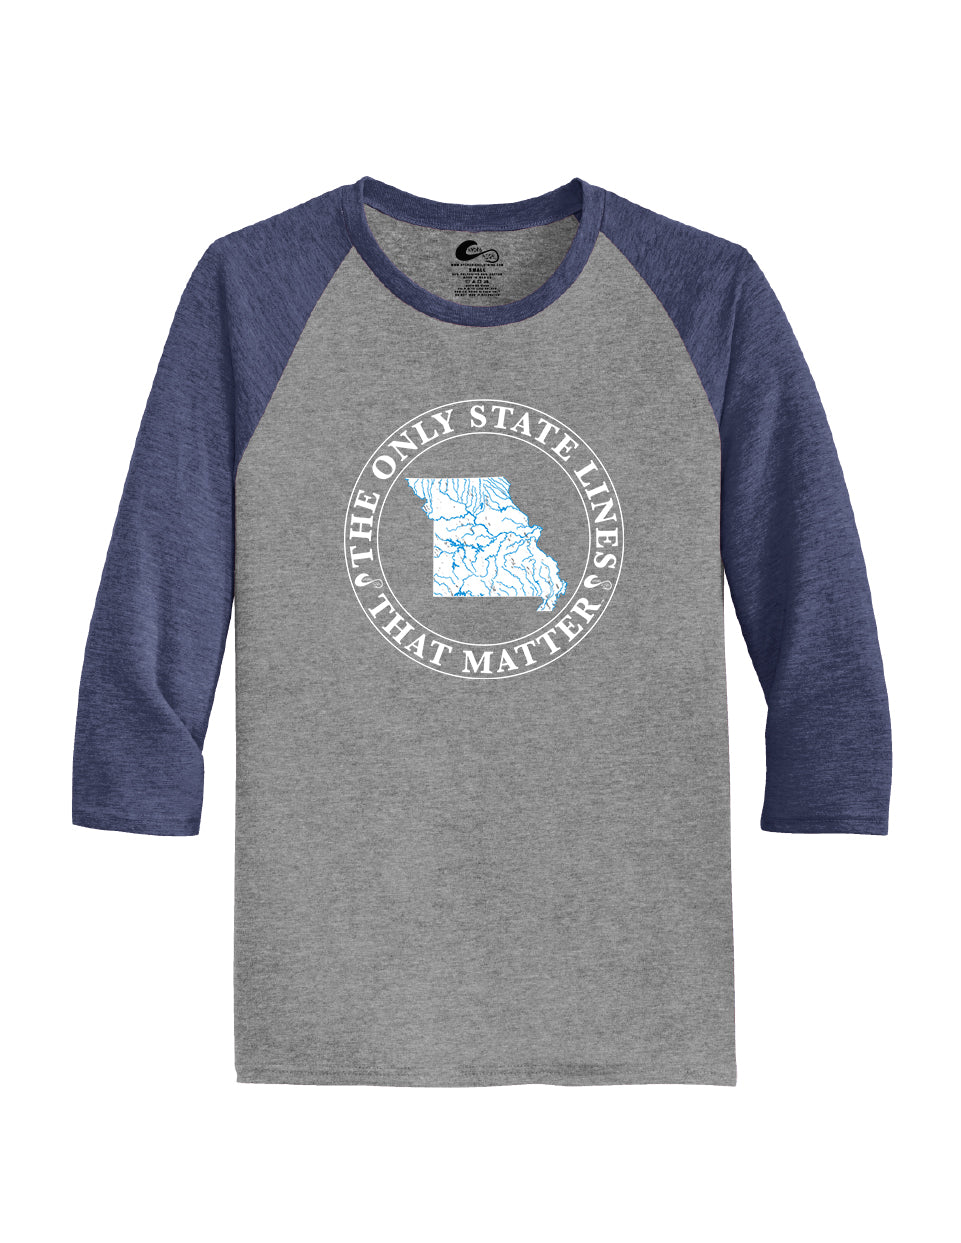 Missouri State Waterways Raglan Shirt